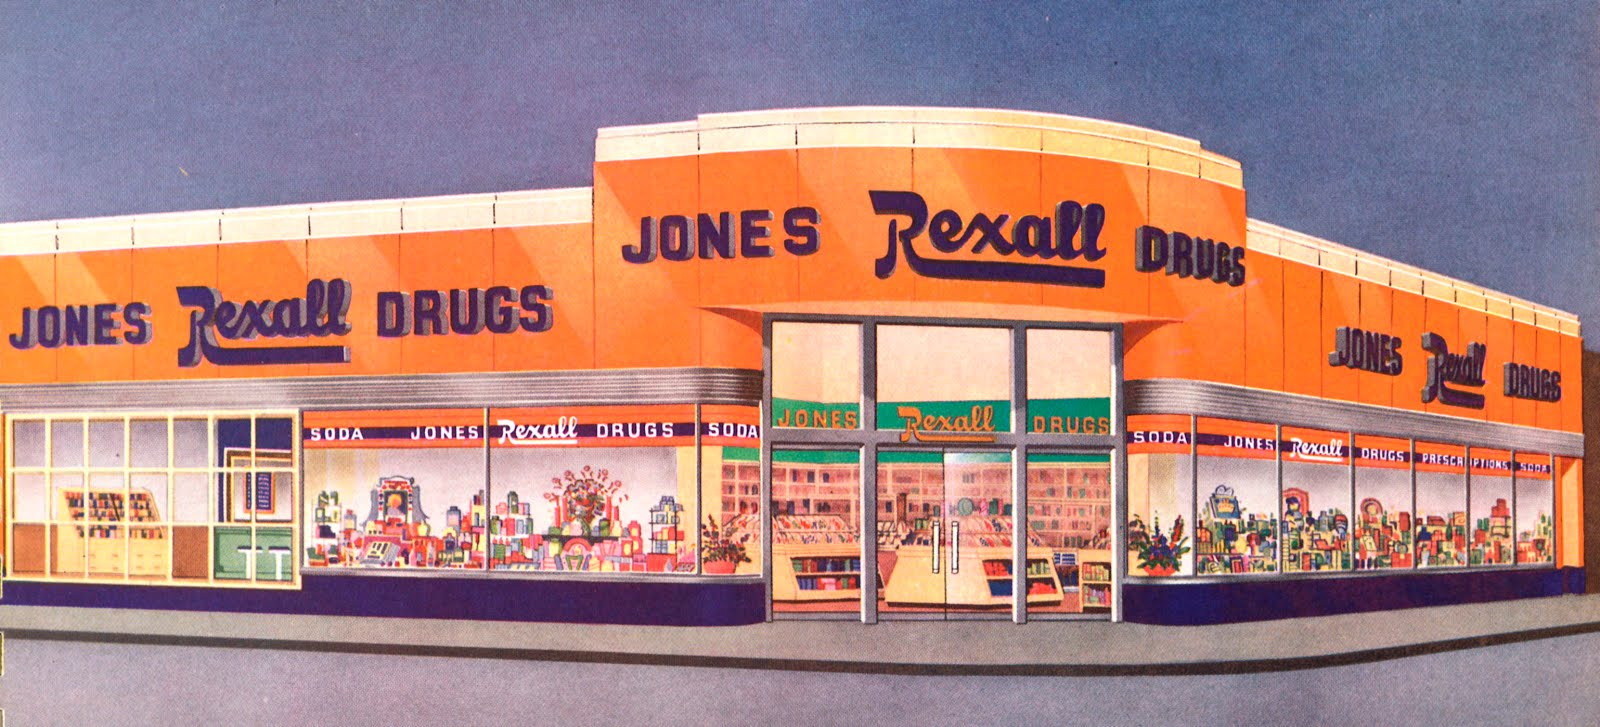 Jones Rexall